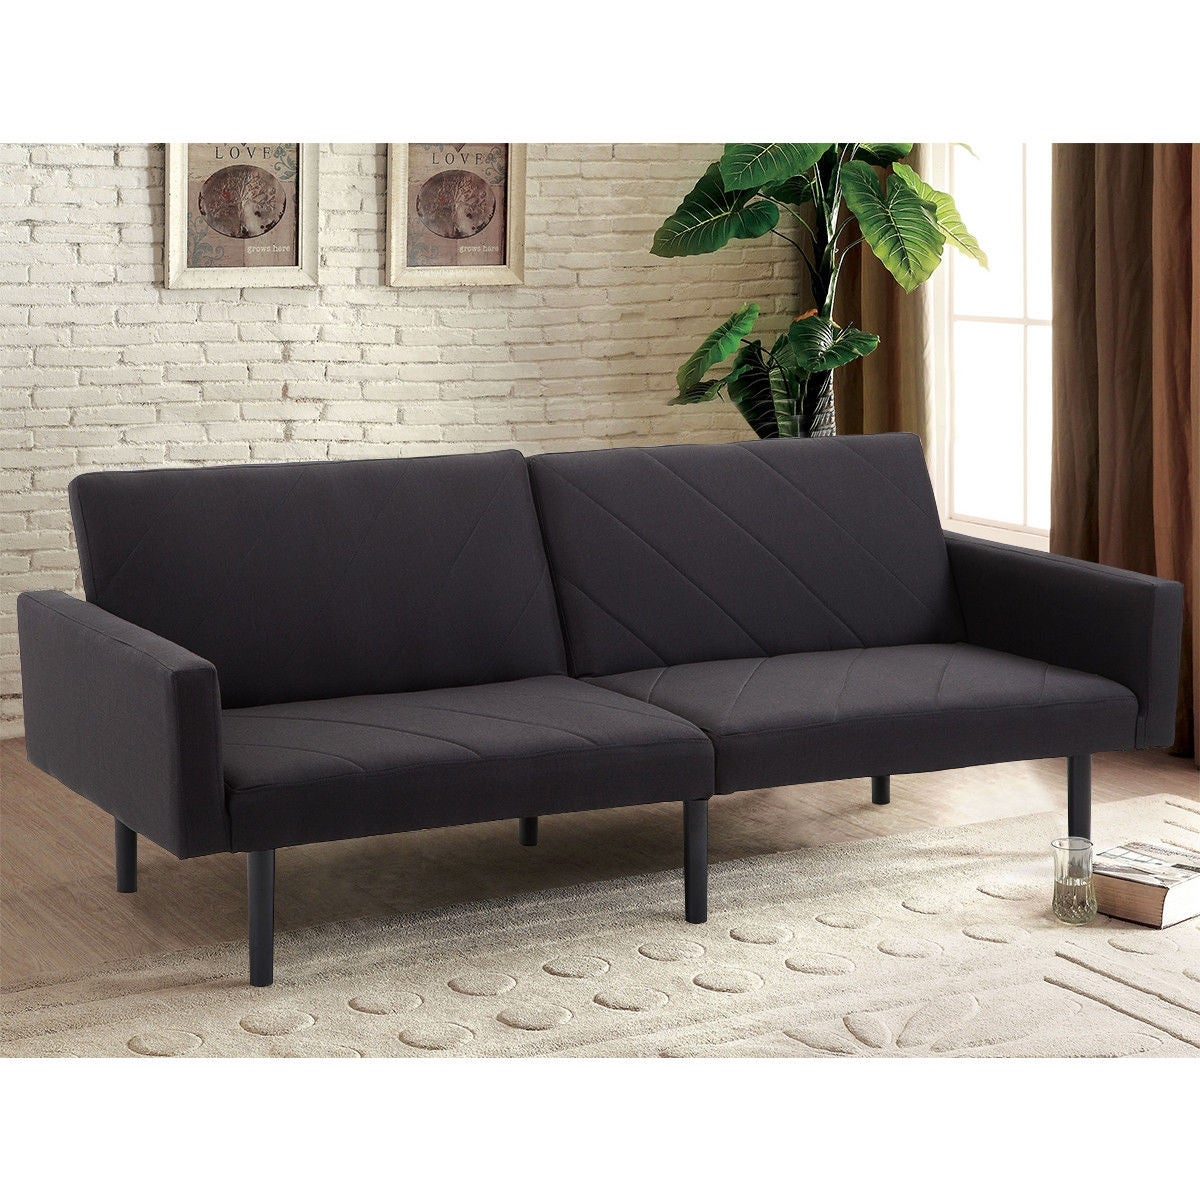 Costway Futon Sofa Bed Convertible Recliner Couch Splitback Sleeper W Wood Legs Black Ships To Canada Ca 20516961